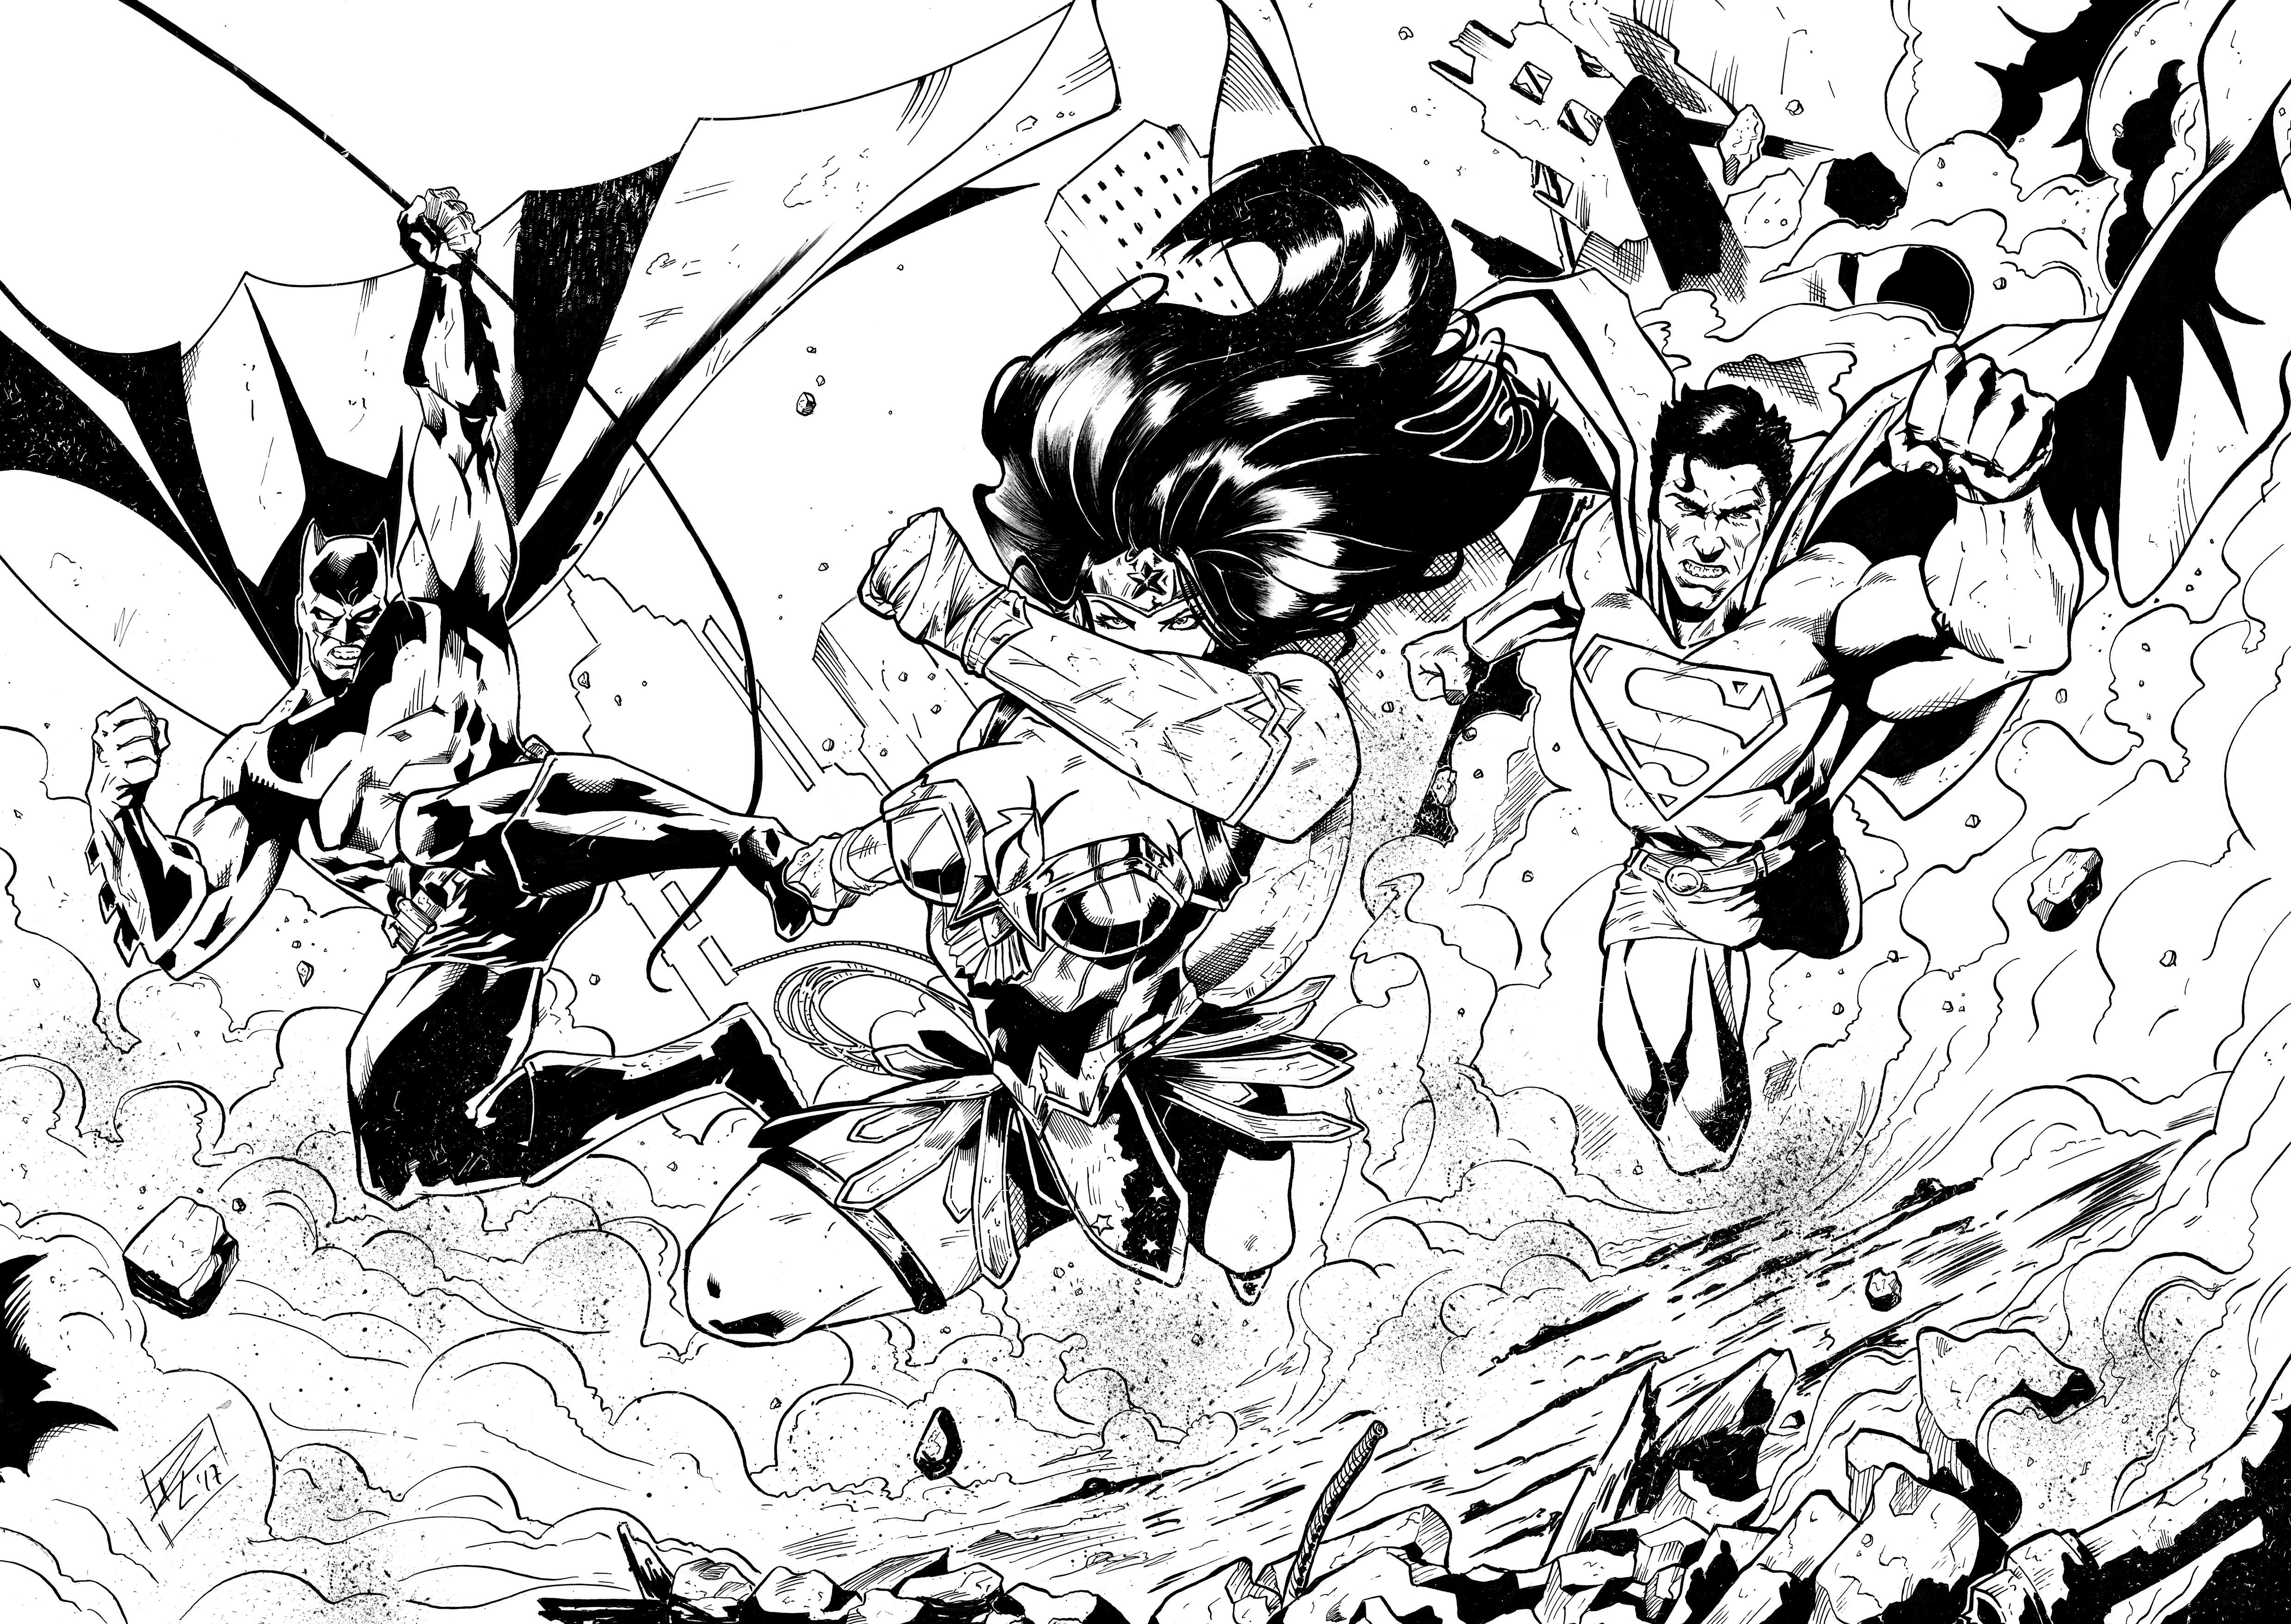 TRINITY (DOBLE SPLASH PAGE INKS)